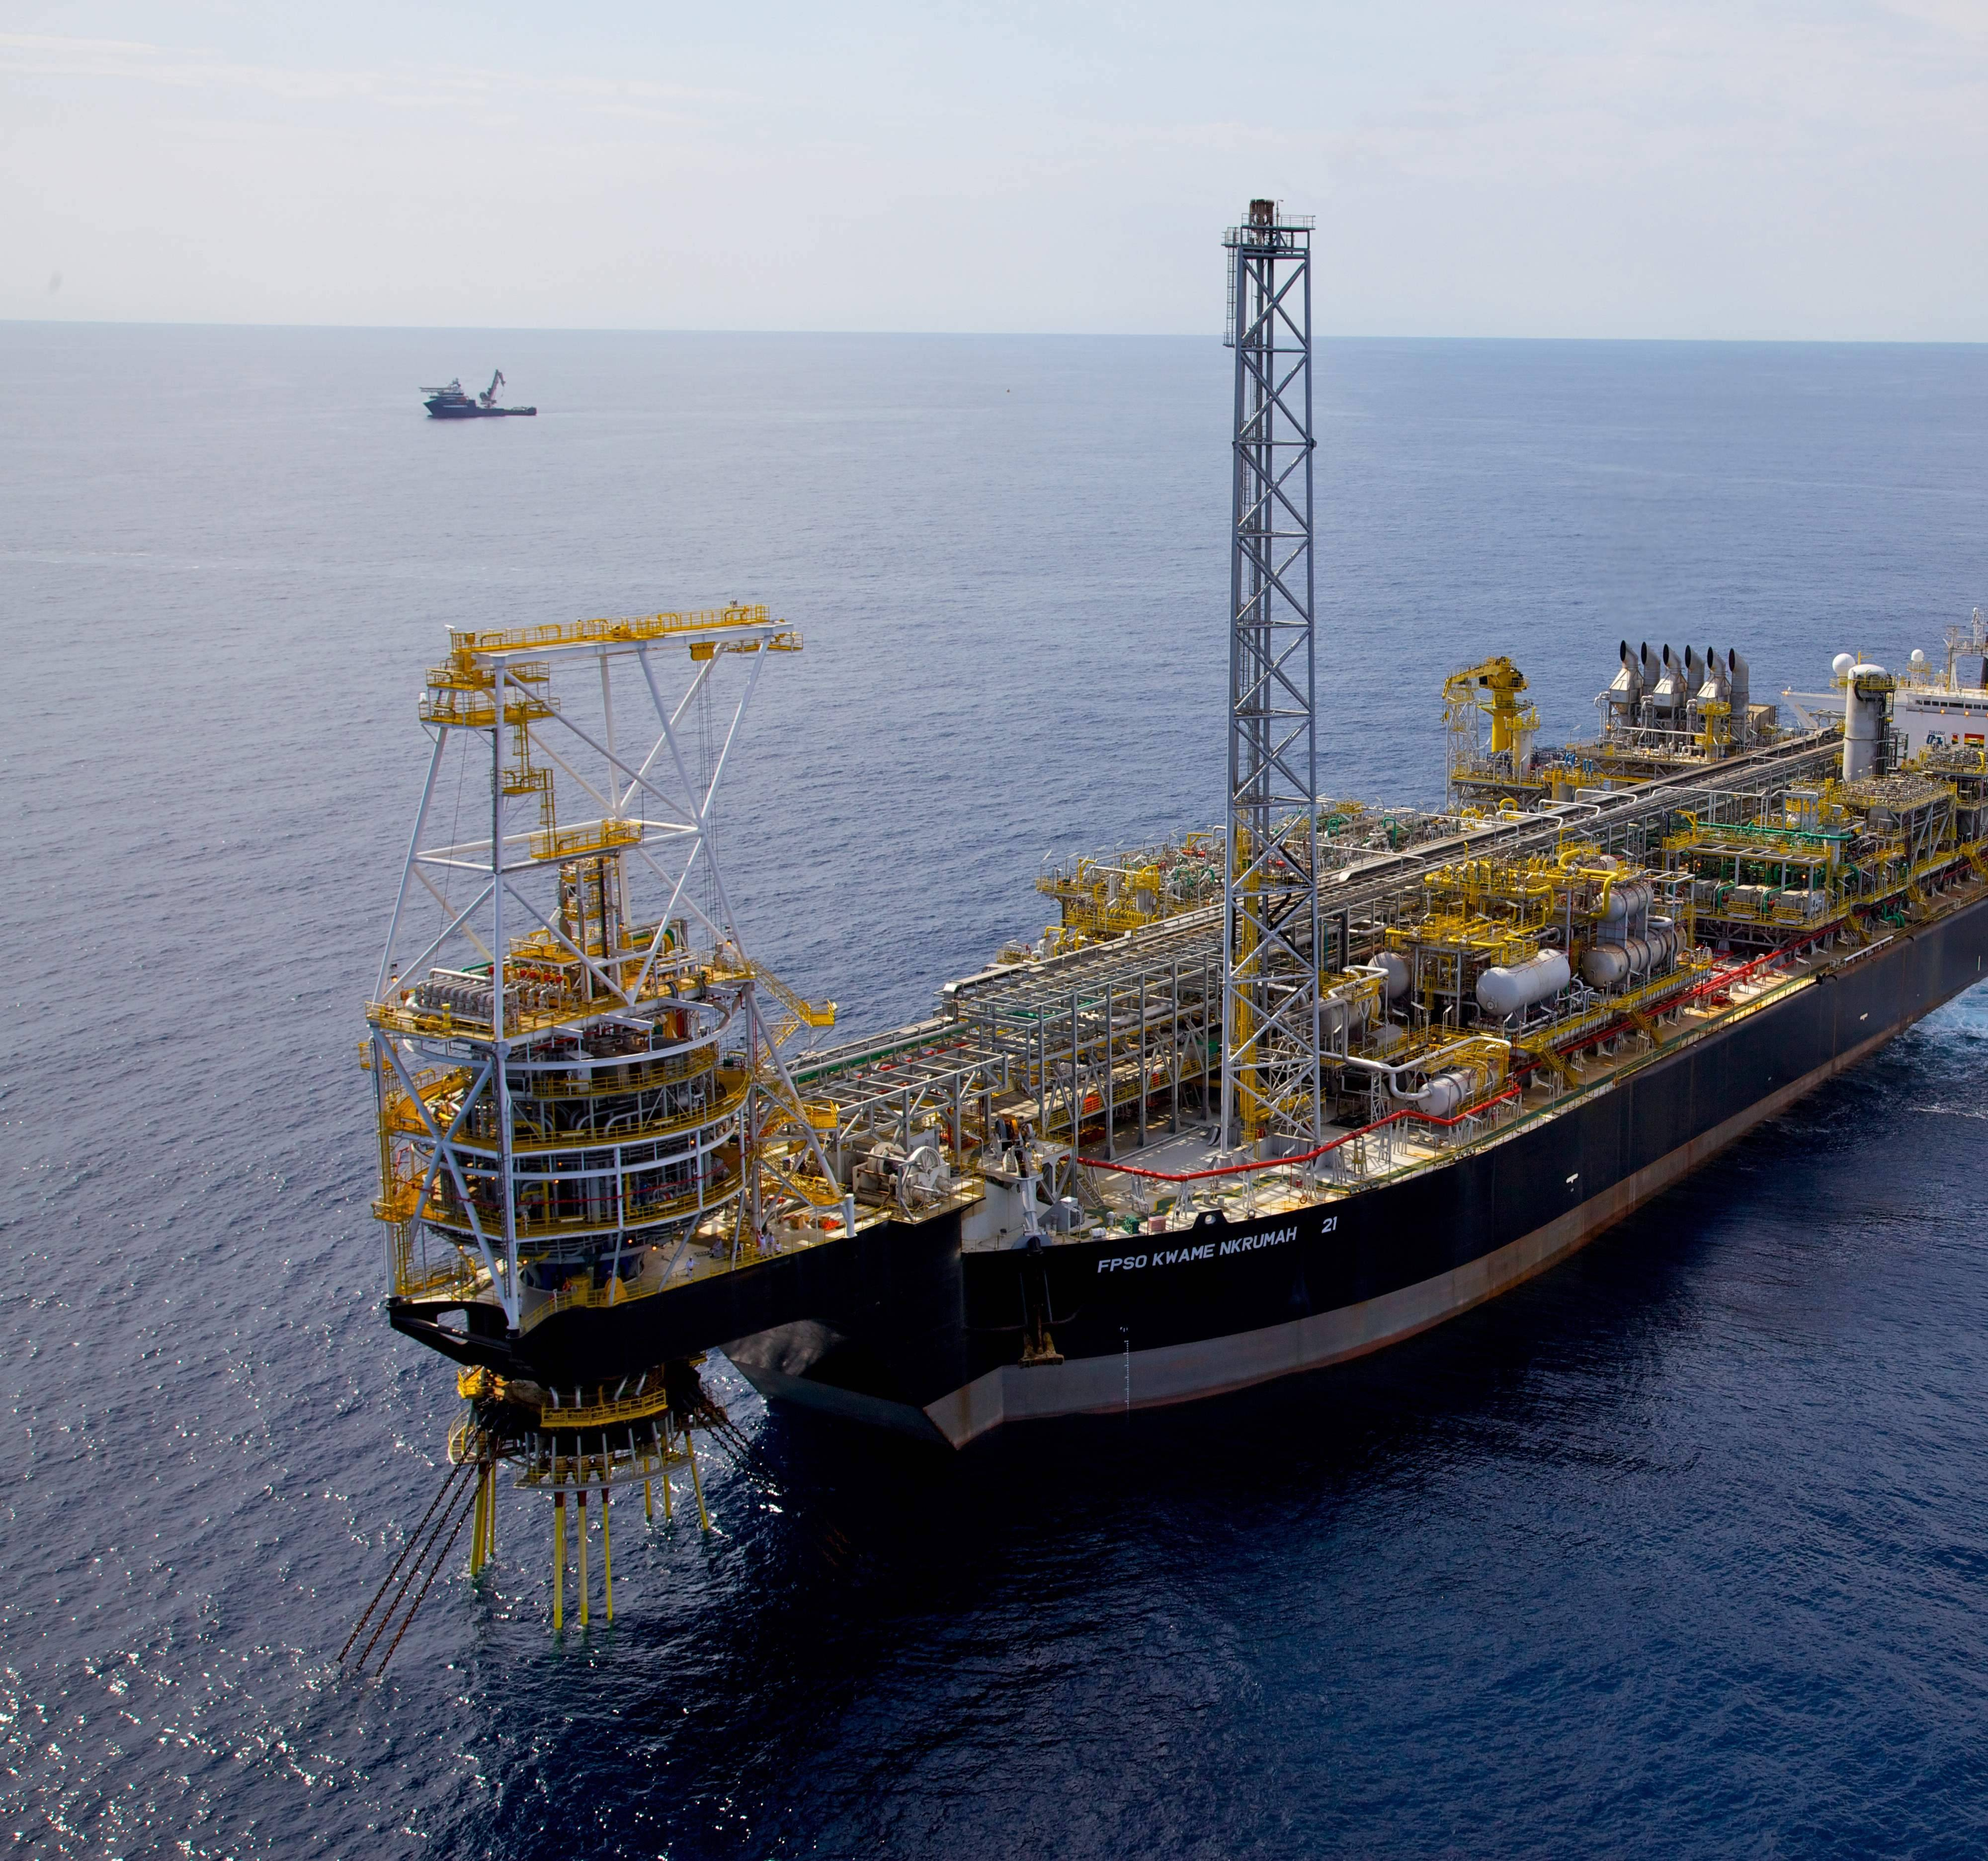 Xpd8 Wins Contract With Tullow Oil In Ghana